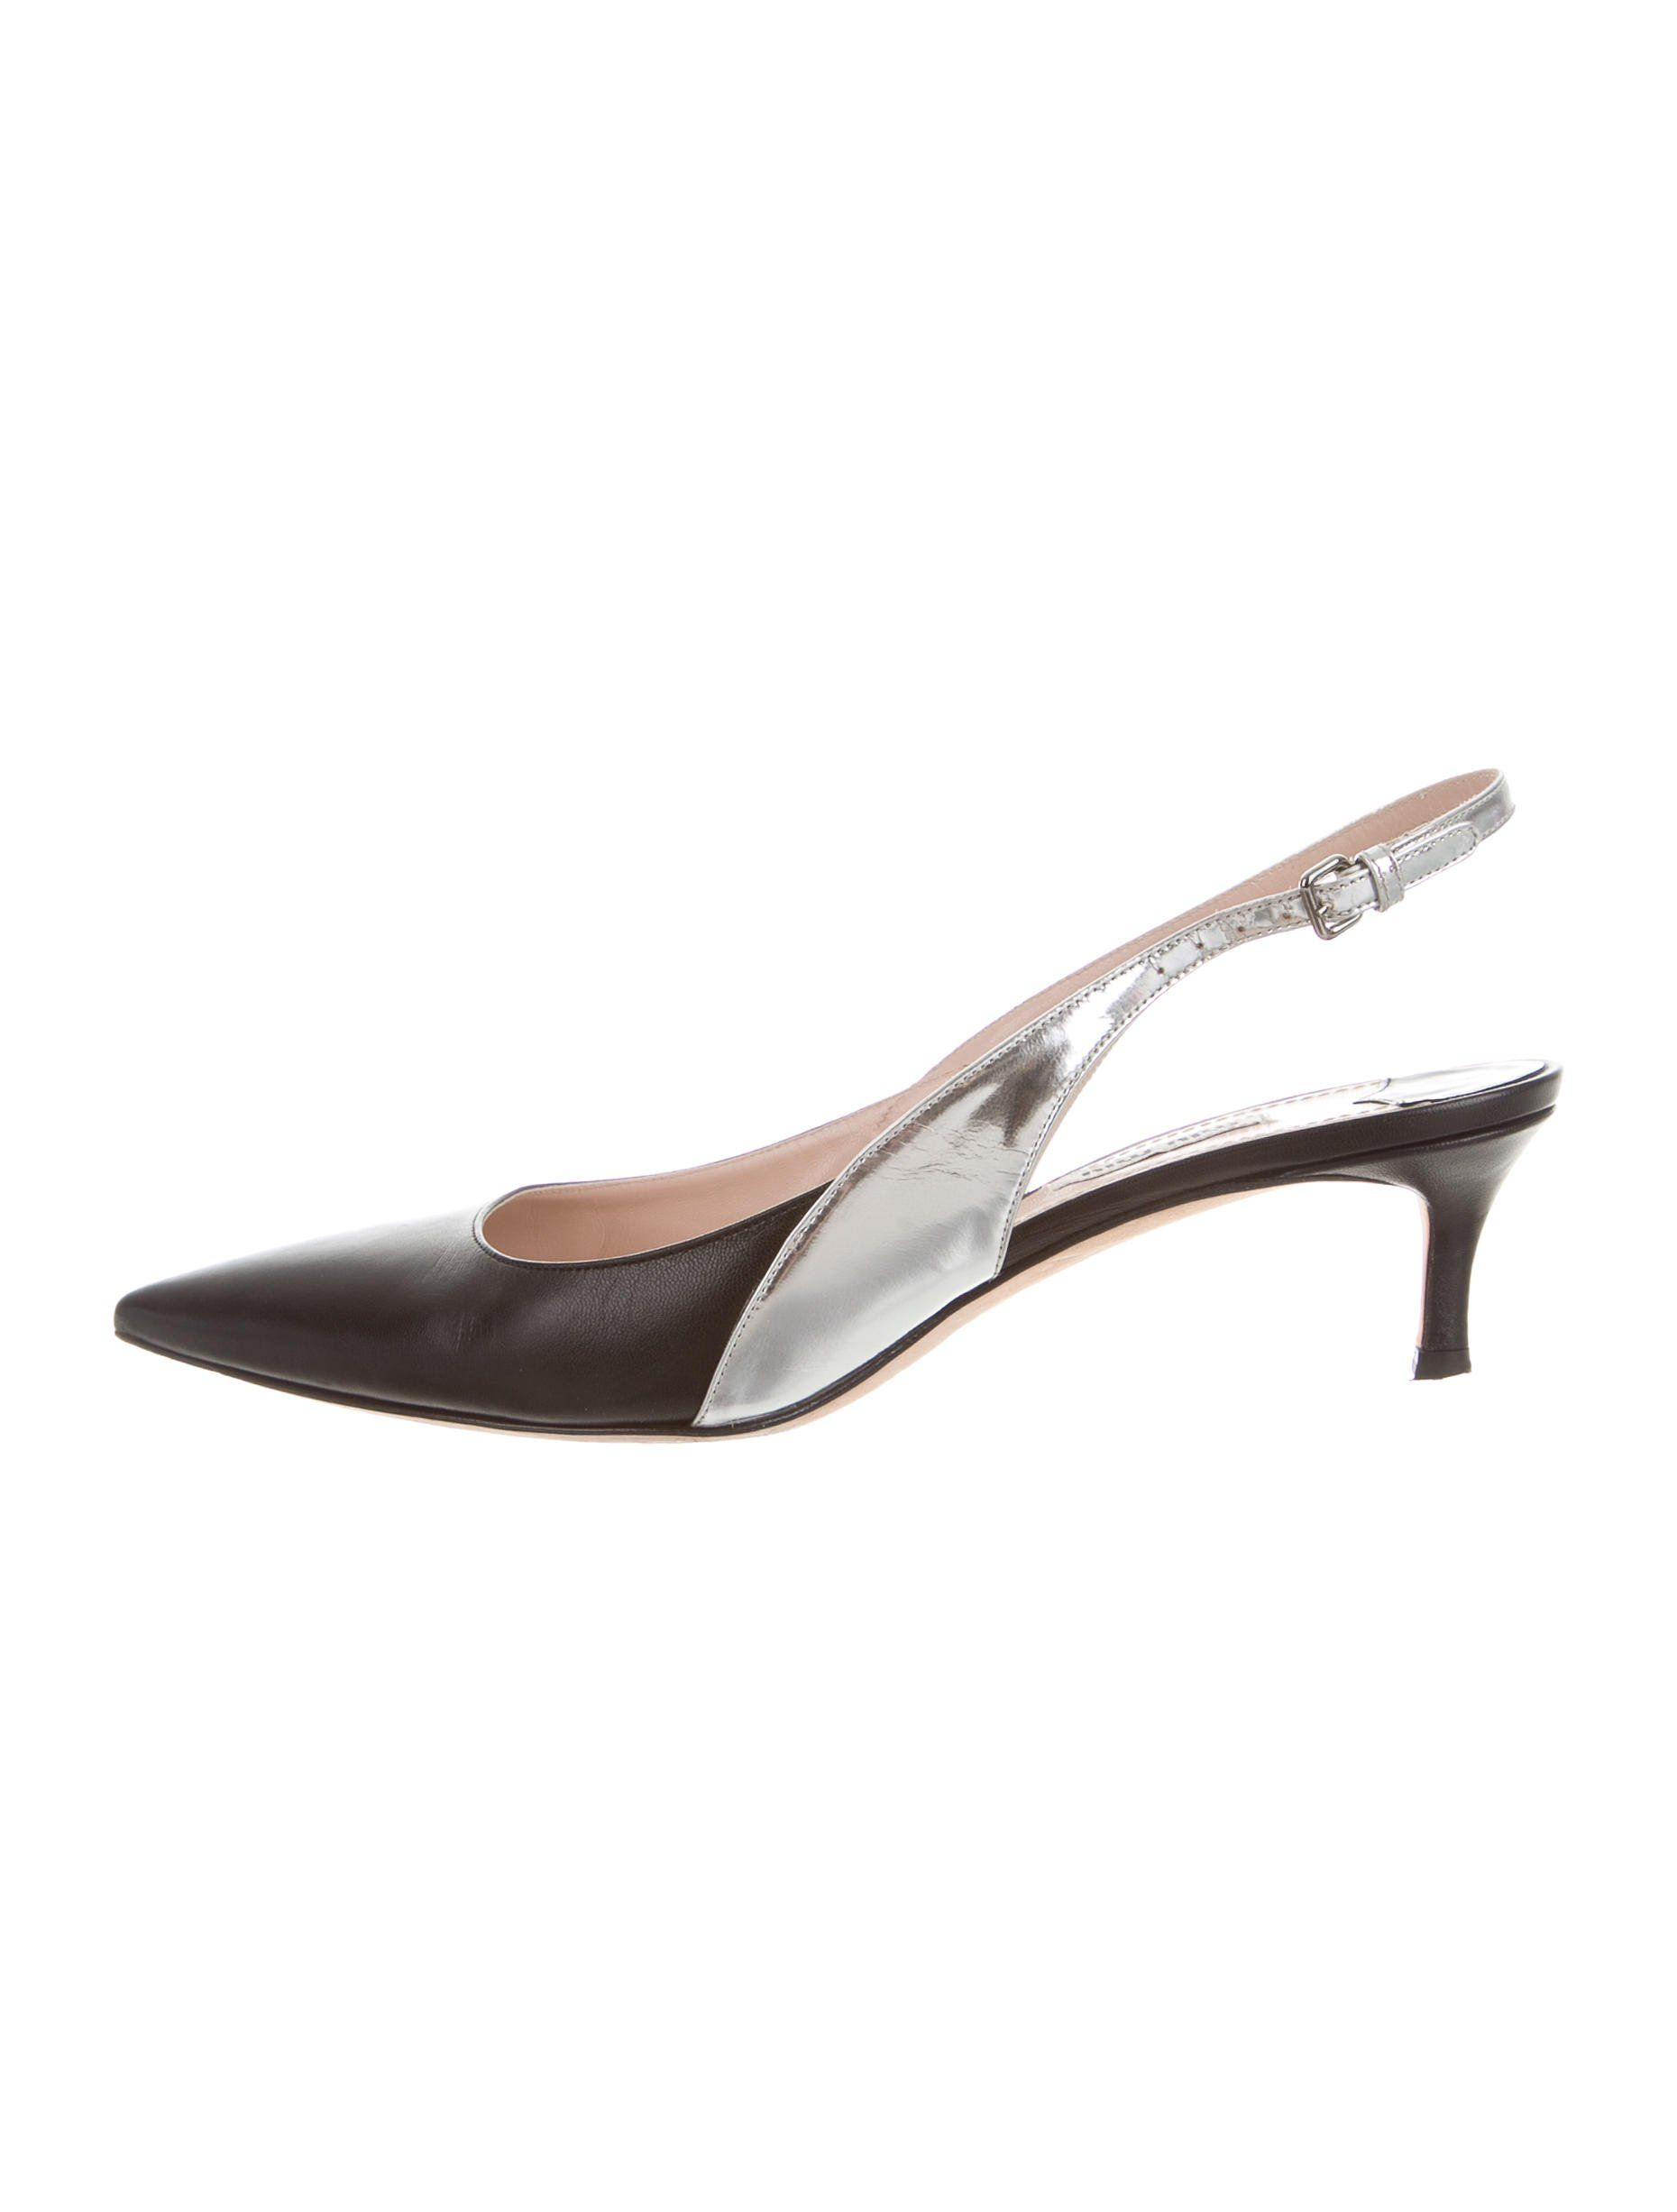 Black and silver leather Miu Miu pointed-toe slingback pumps with covered low heels and buckle closures at ankles.